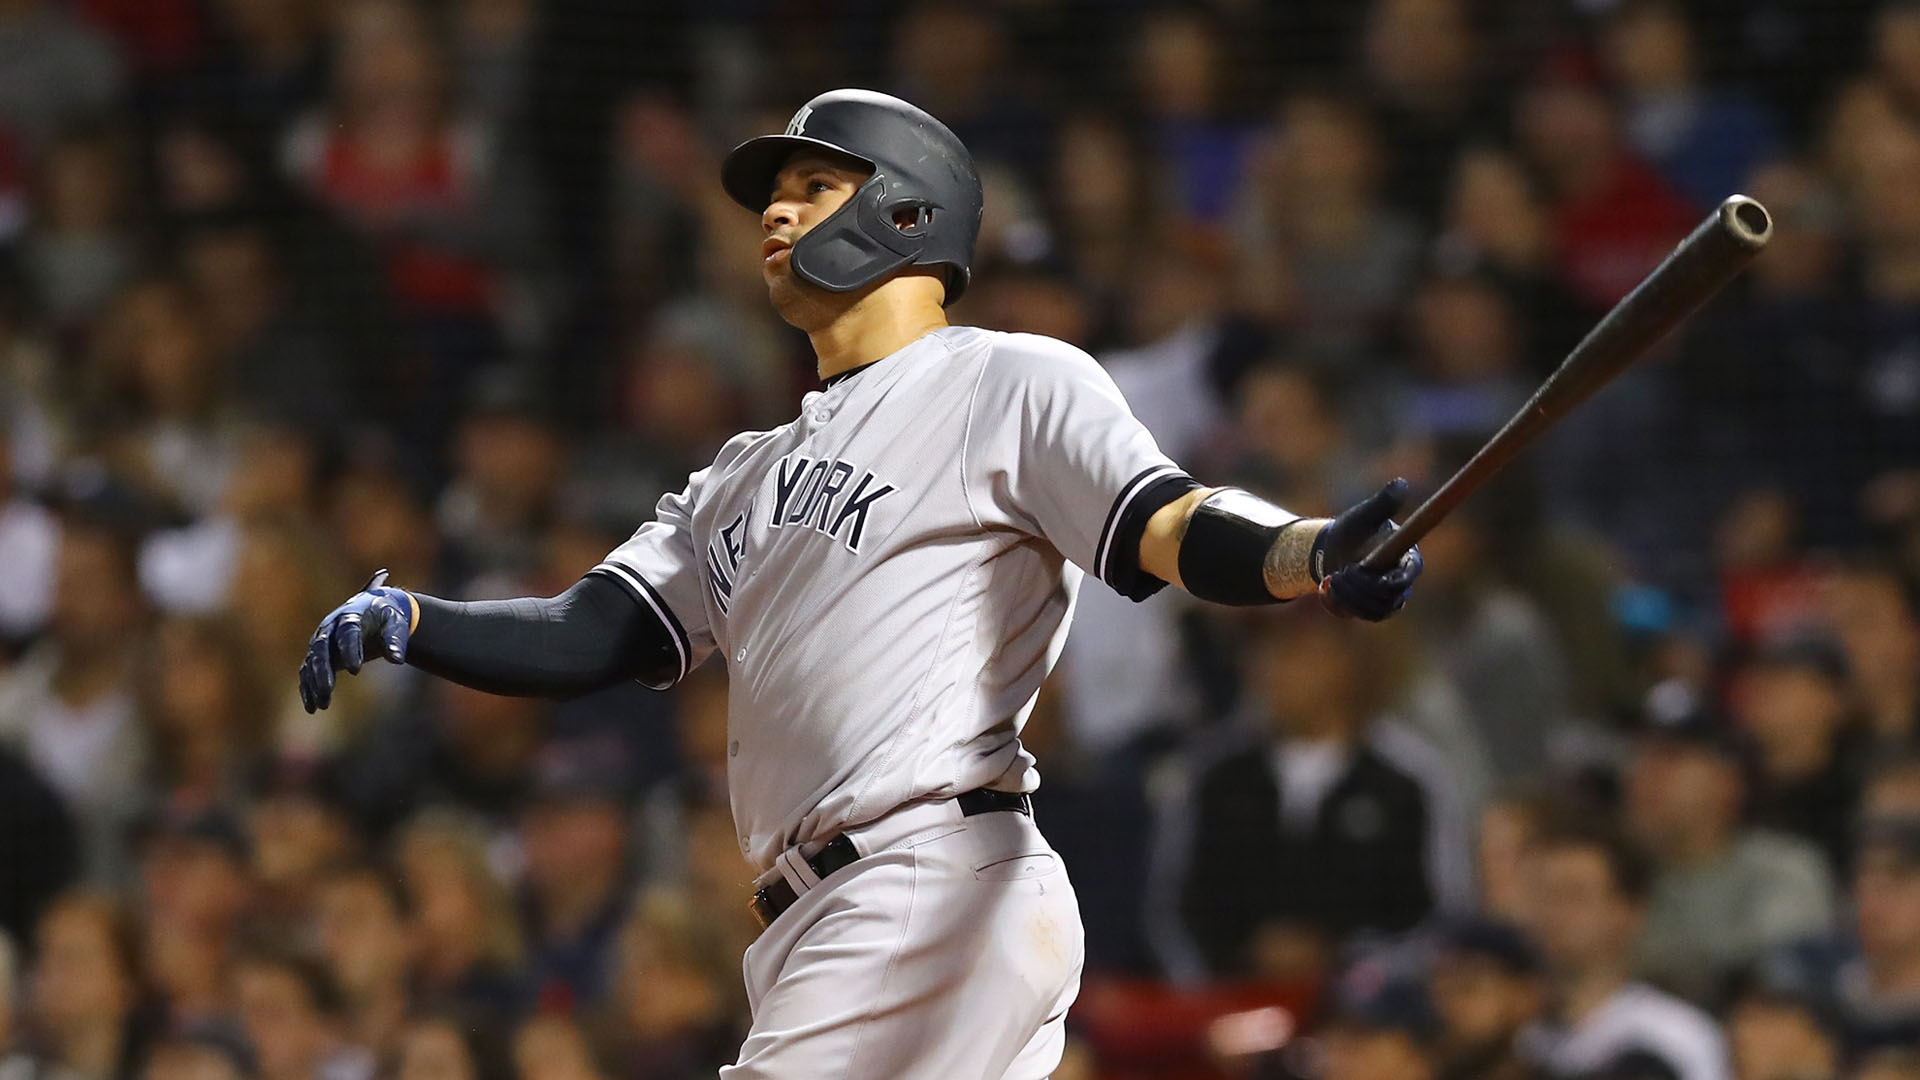 'Embarrassing': Yanks routed by Red Sox 16-1, trail ALDS 2-1